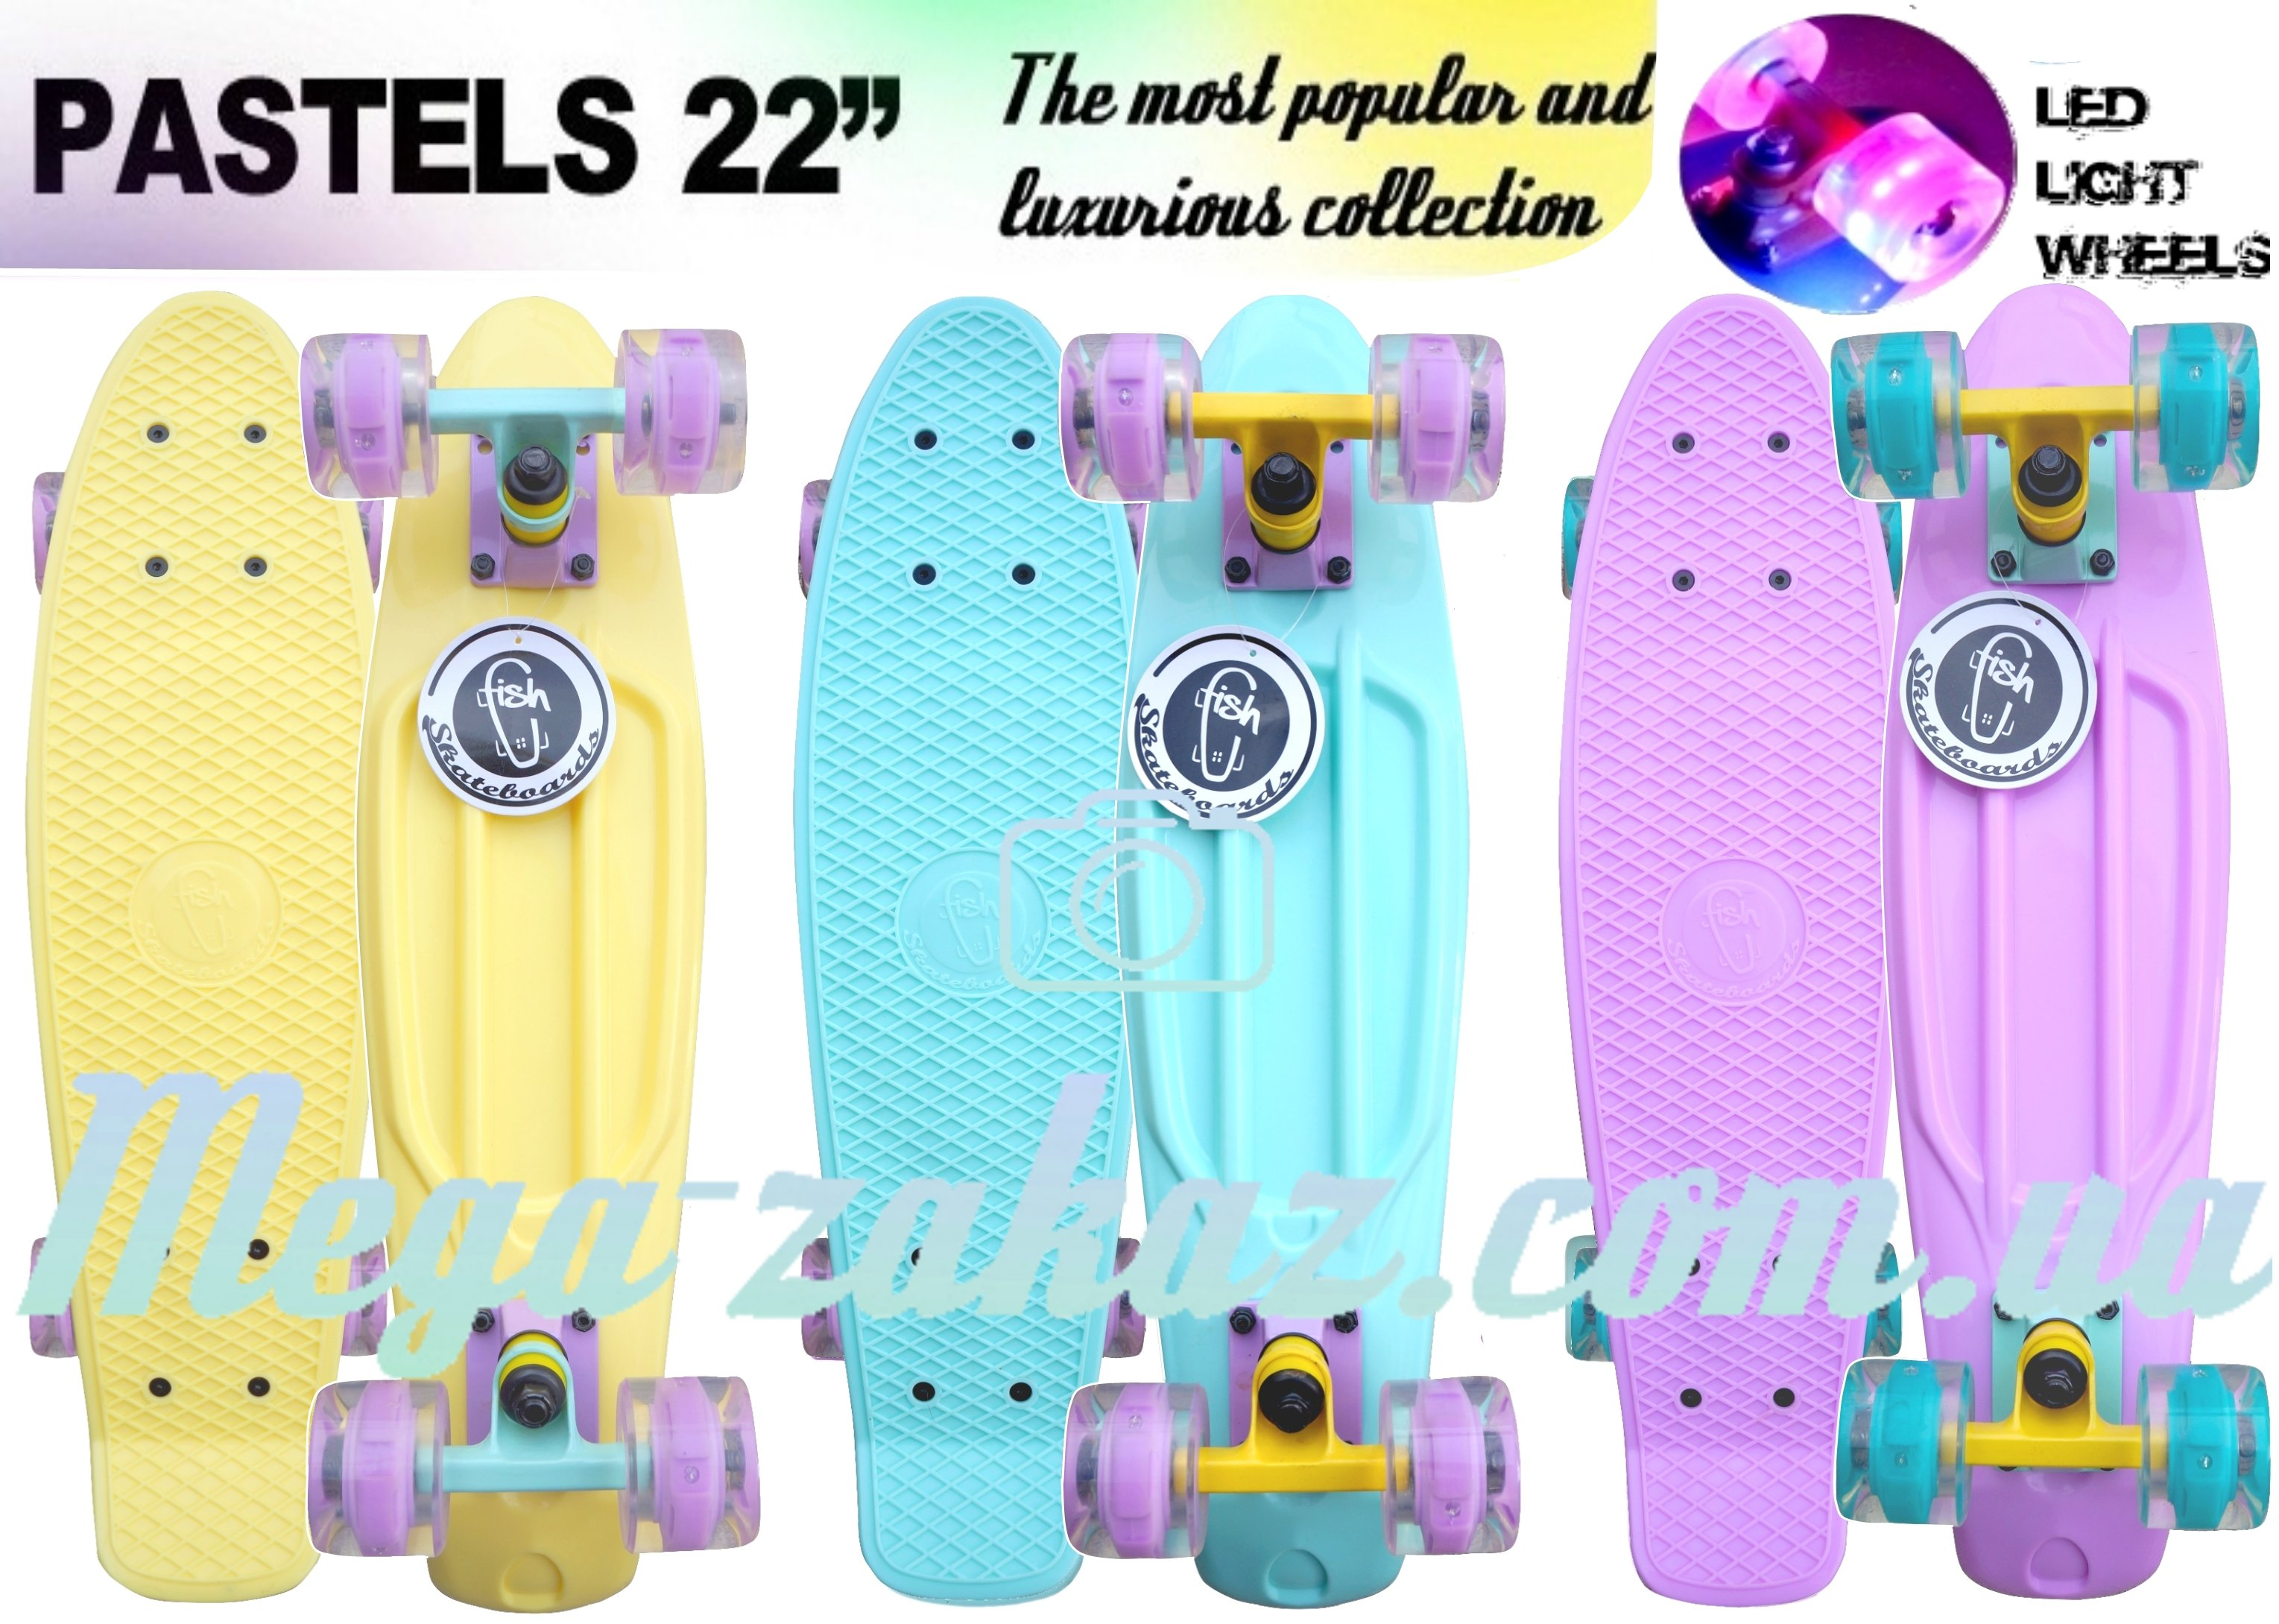 http://mega-zakaz.com.ua/images/upload/penny%20board%20pastel%20collection%20light%20wheelsZAKAZ.jpg